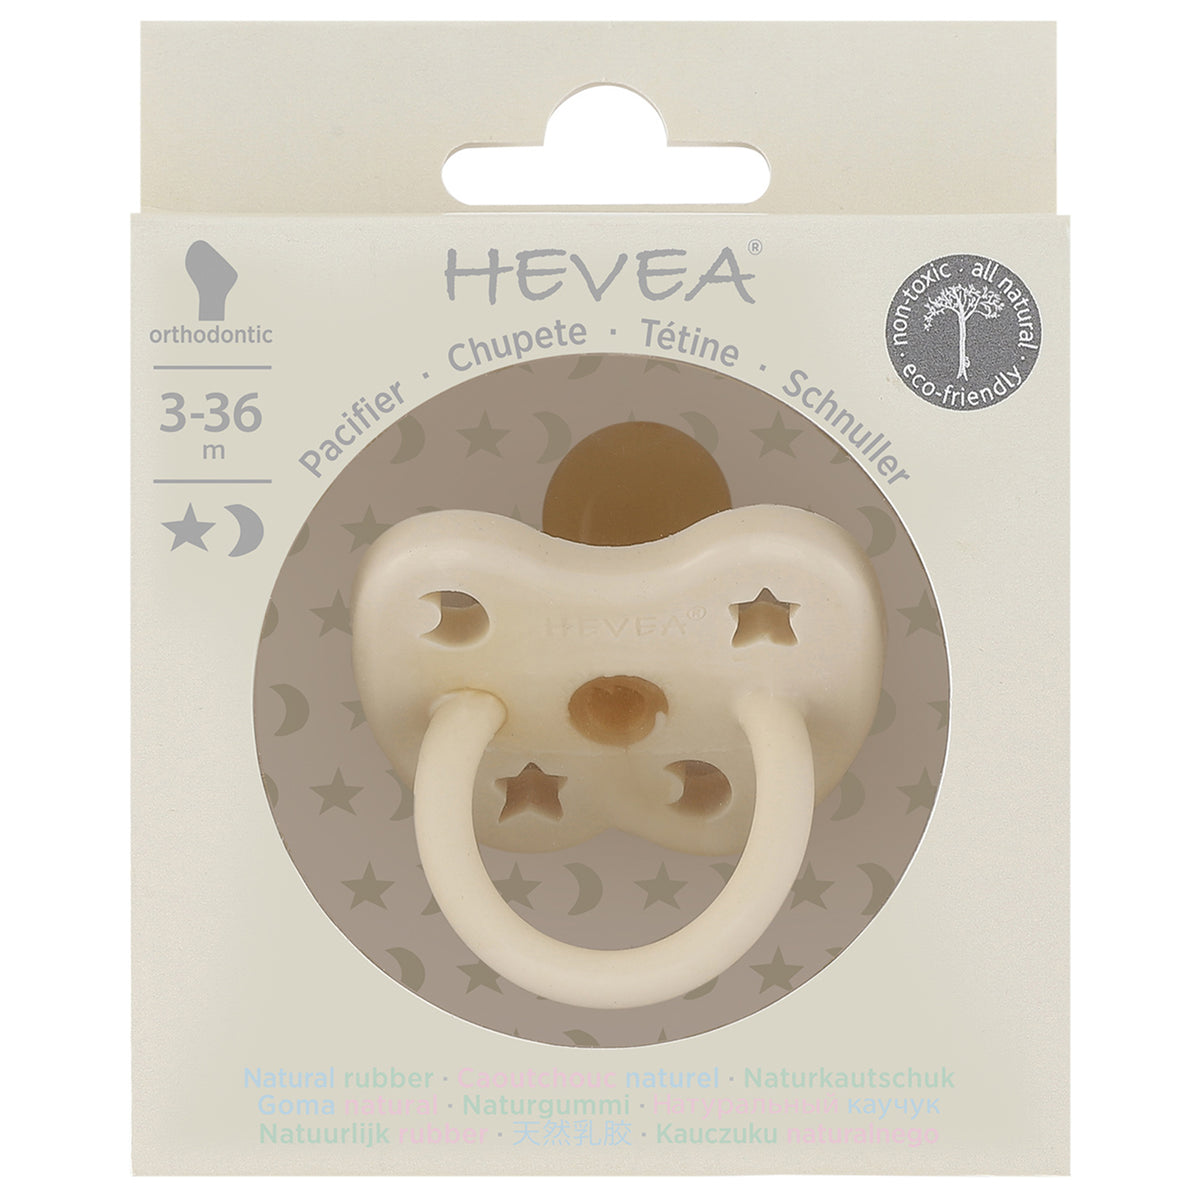 Hevea Orthodontic Pacifier In Milky White - Scandi Minimal